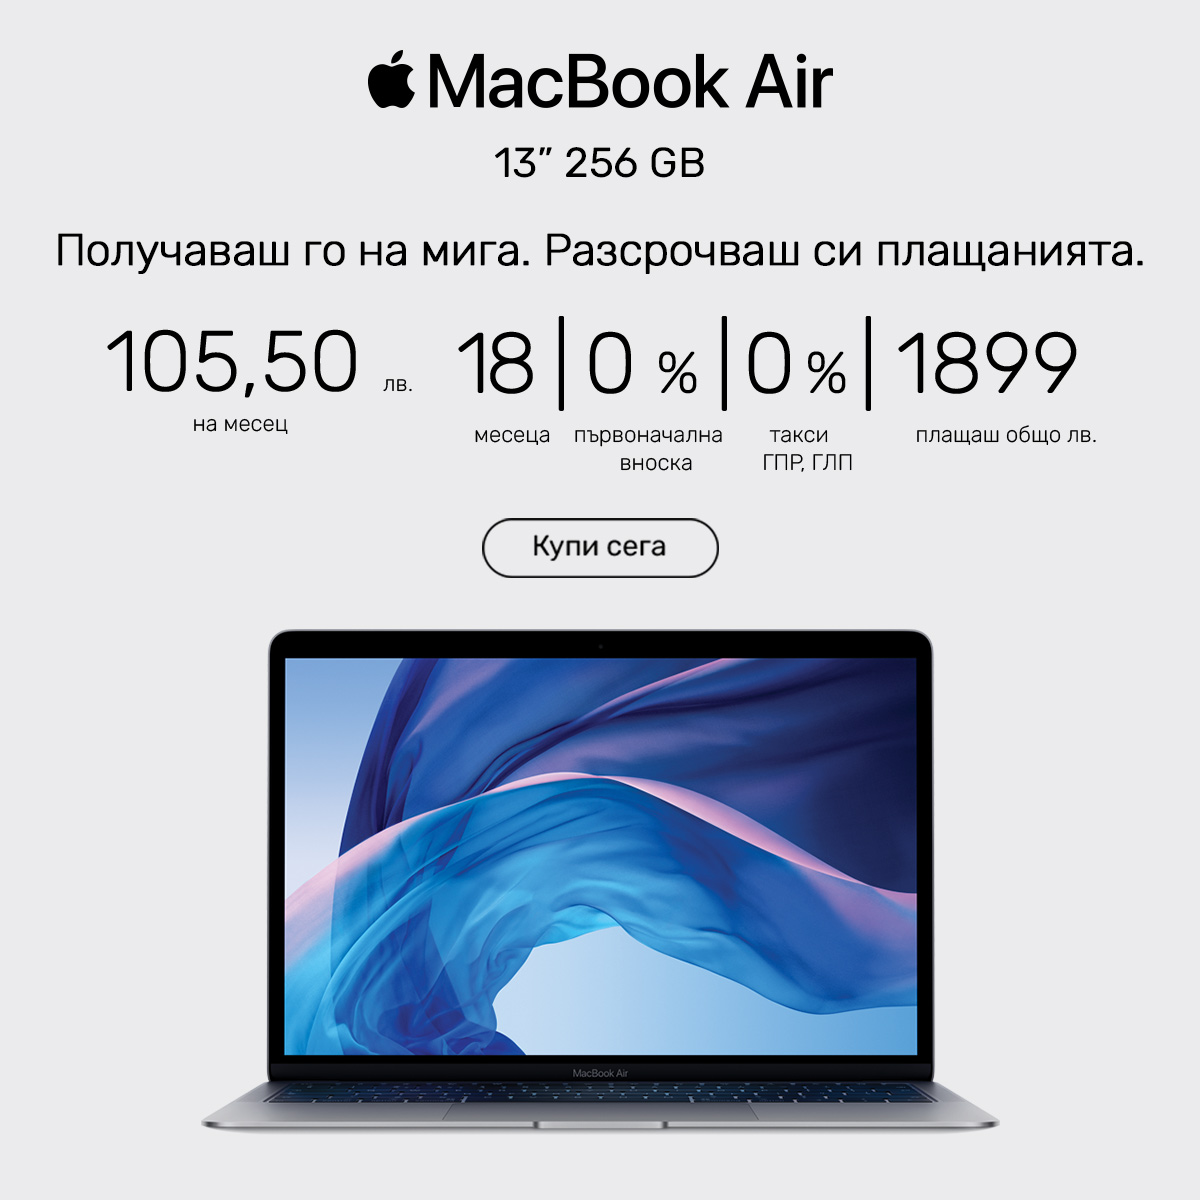 MacBook Air 1899 лв